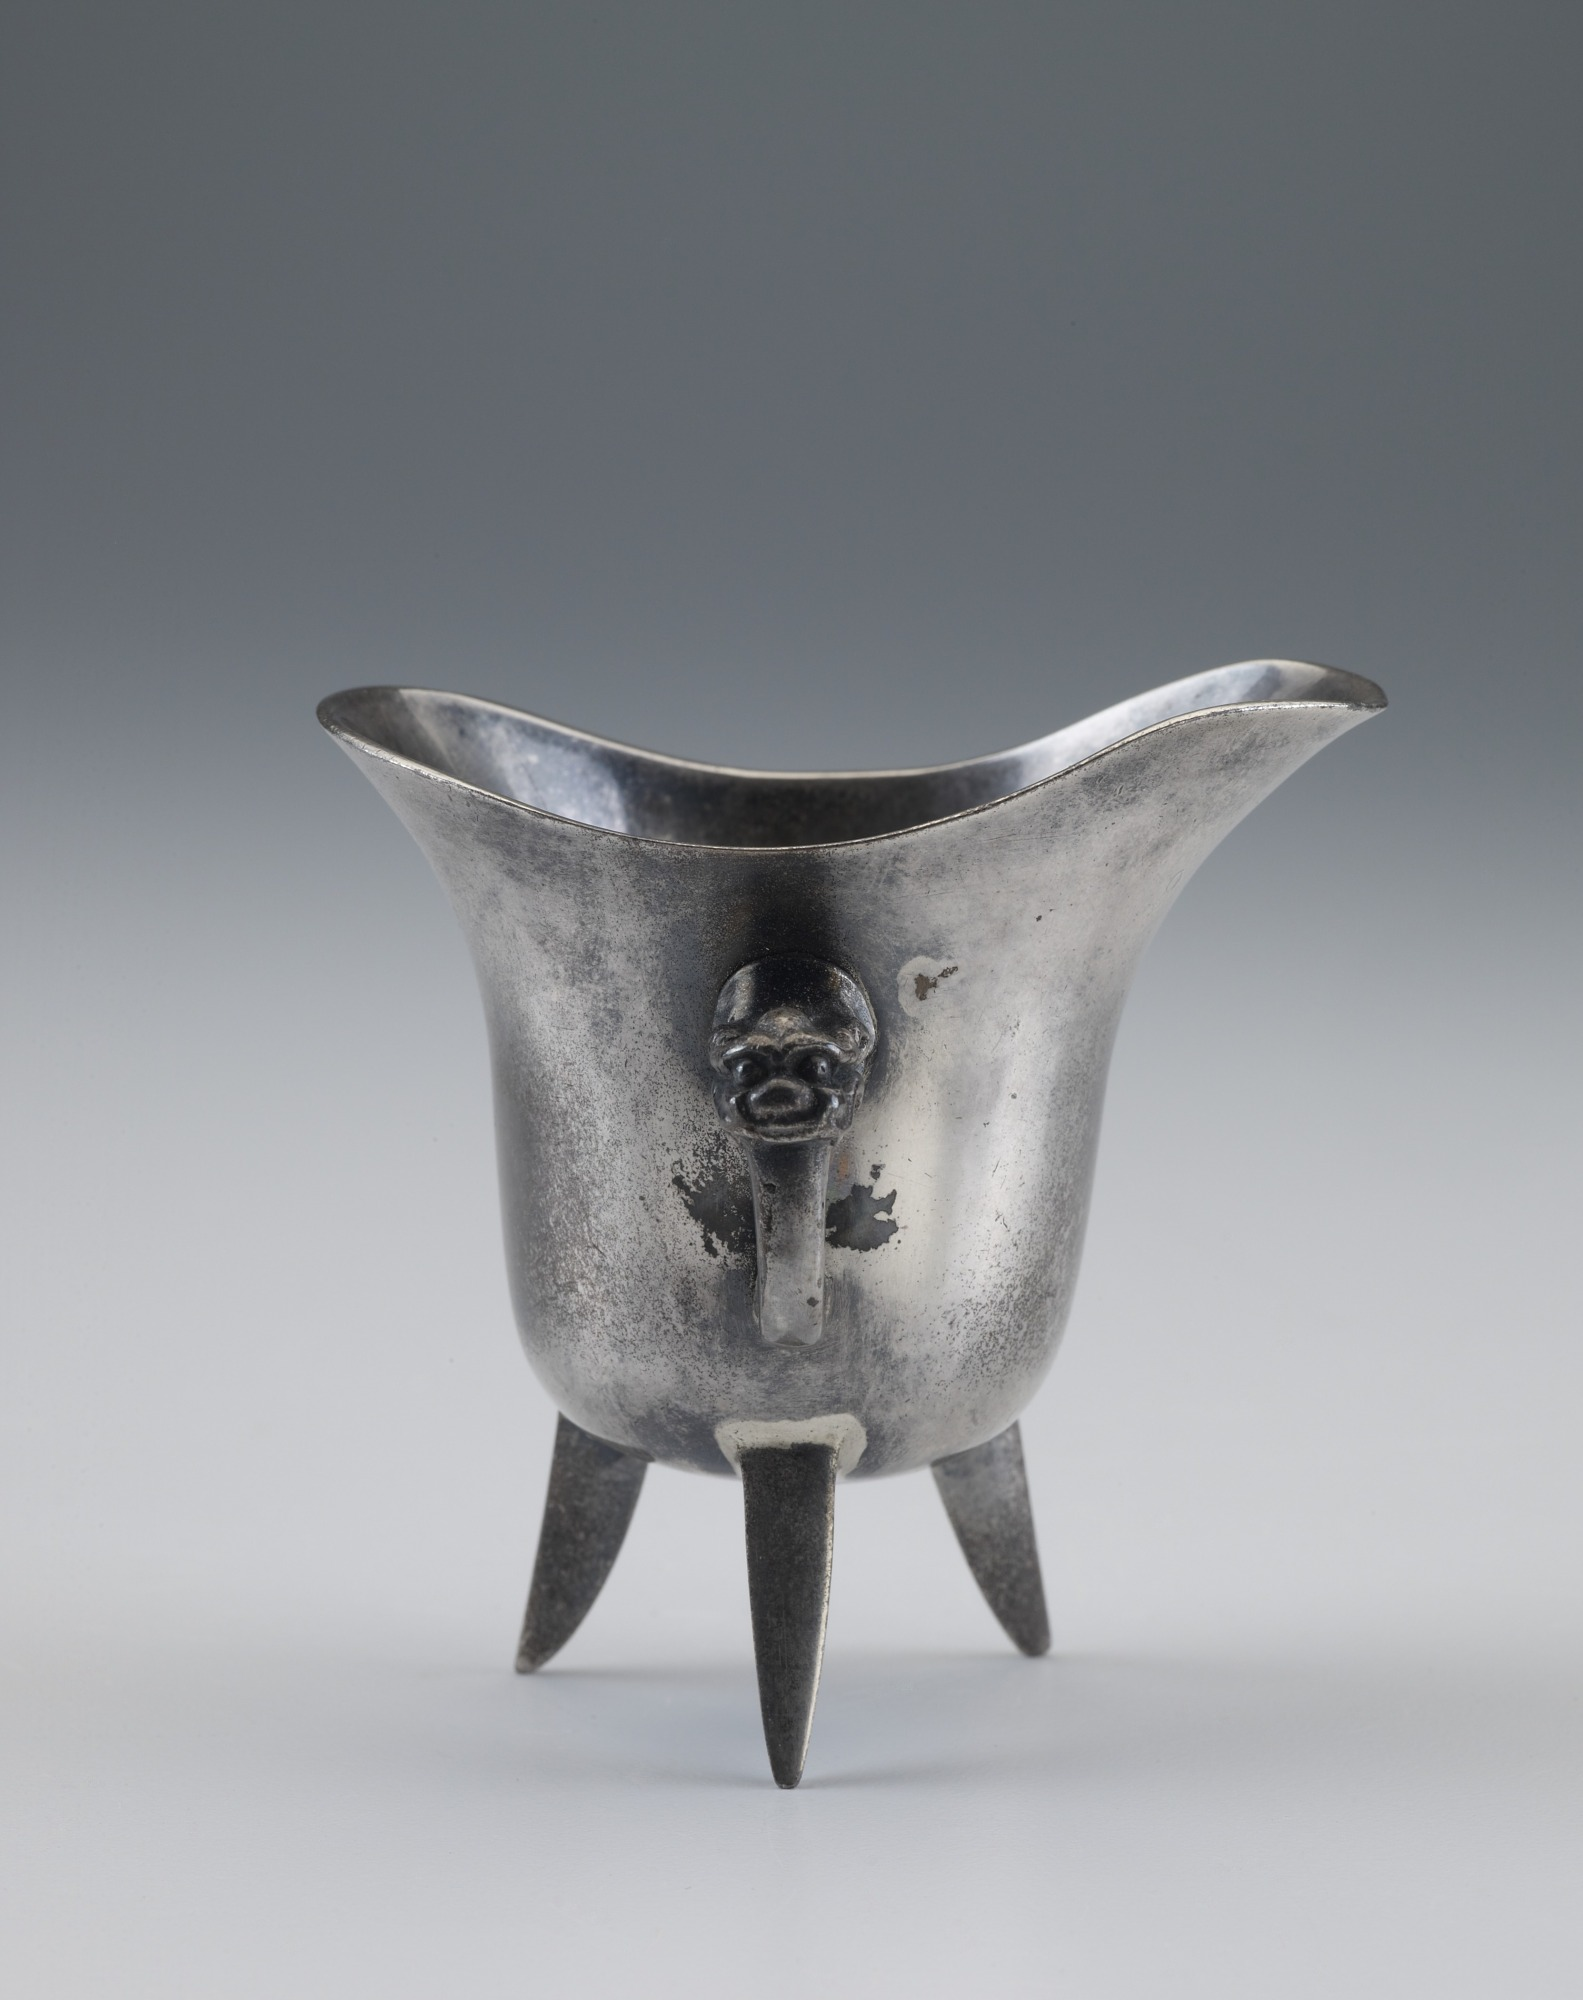 Cup in the form of a jue